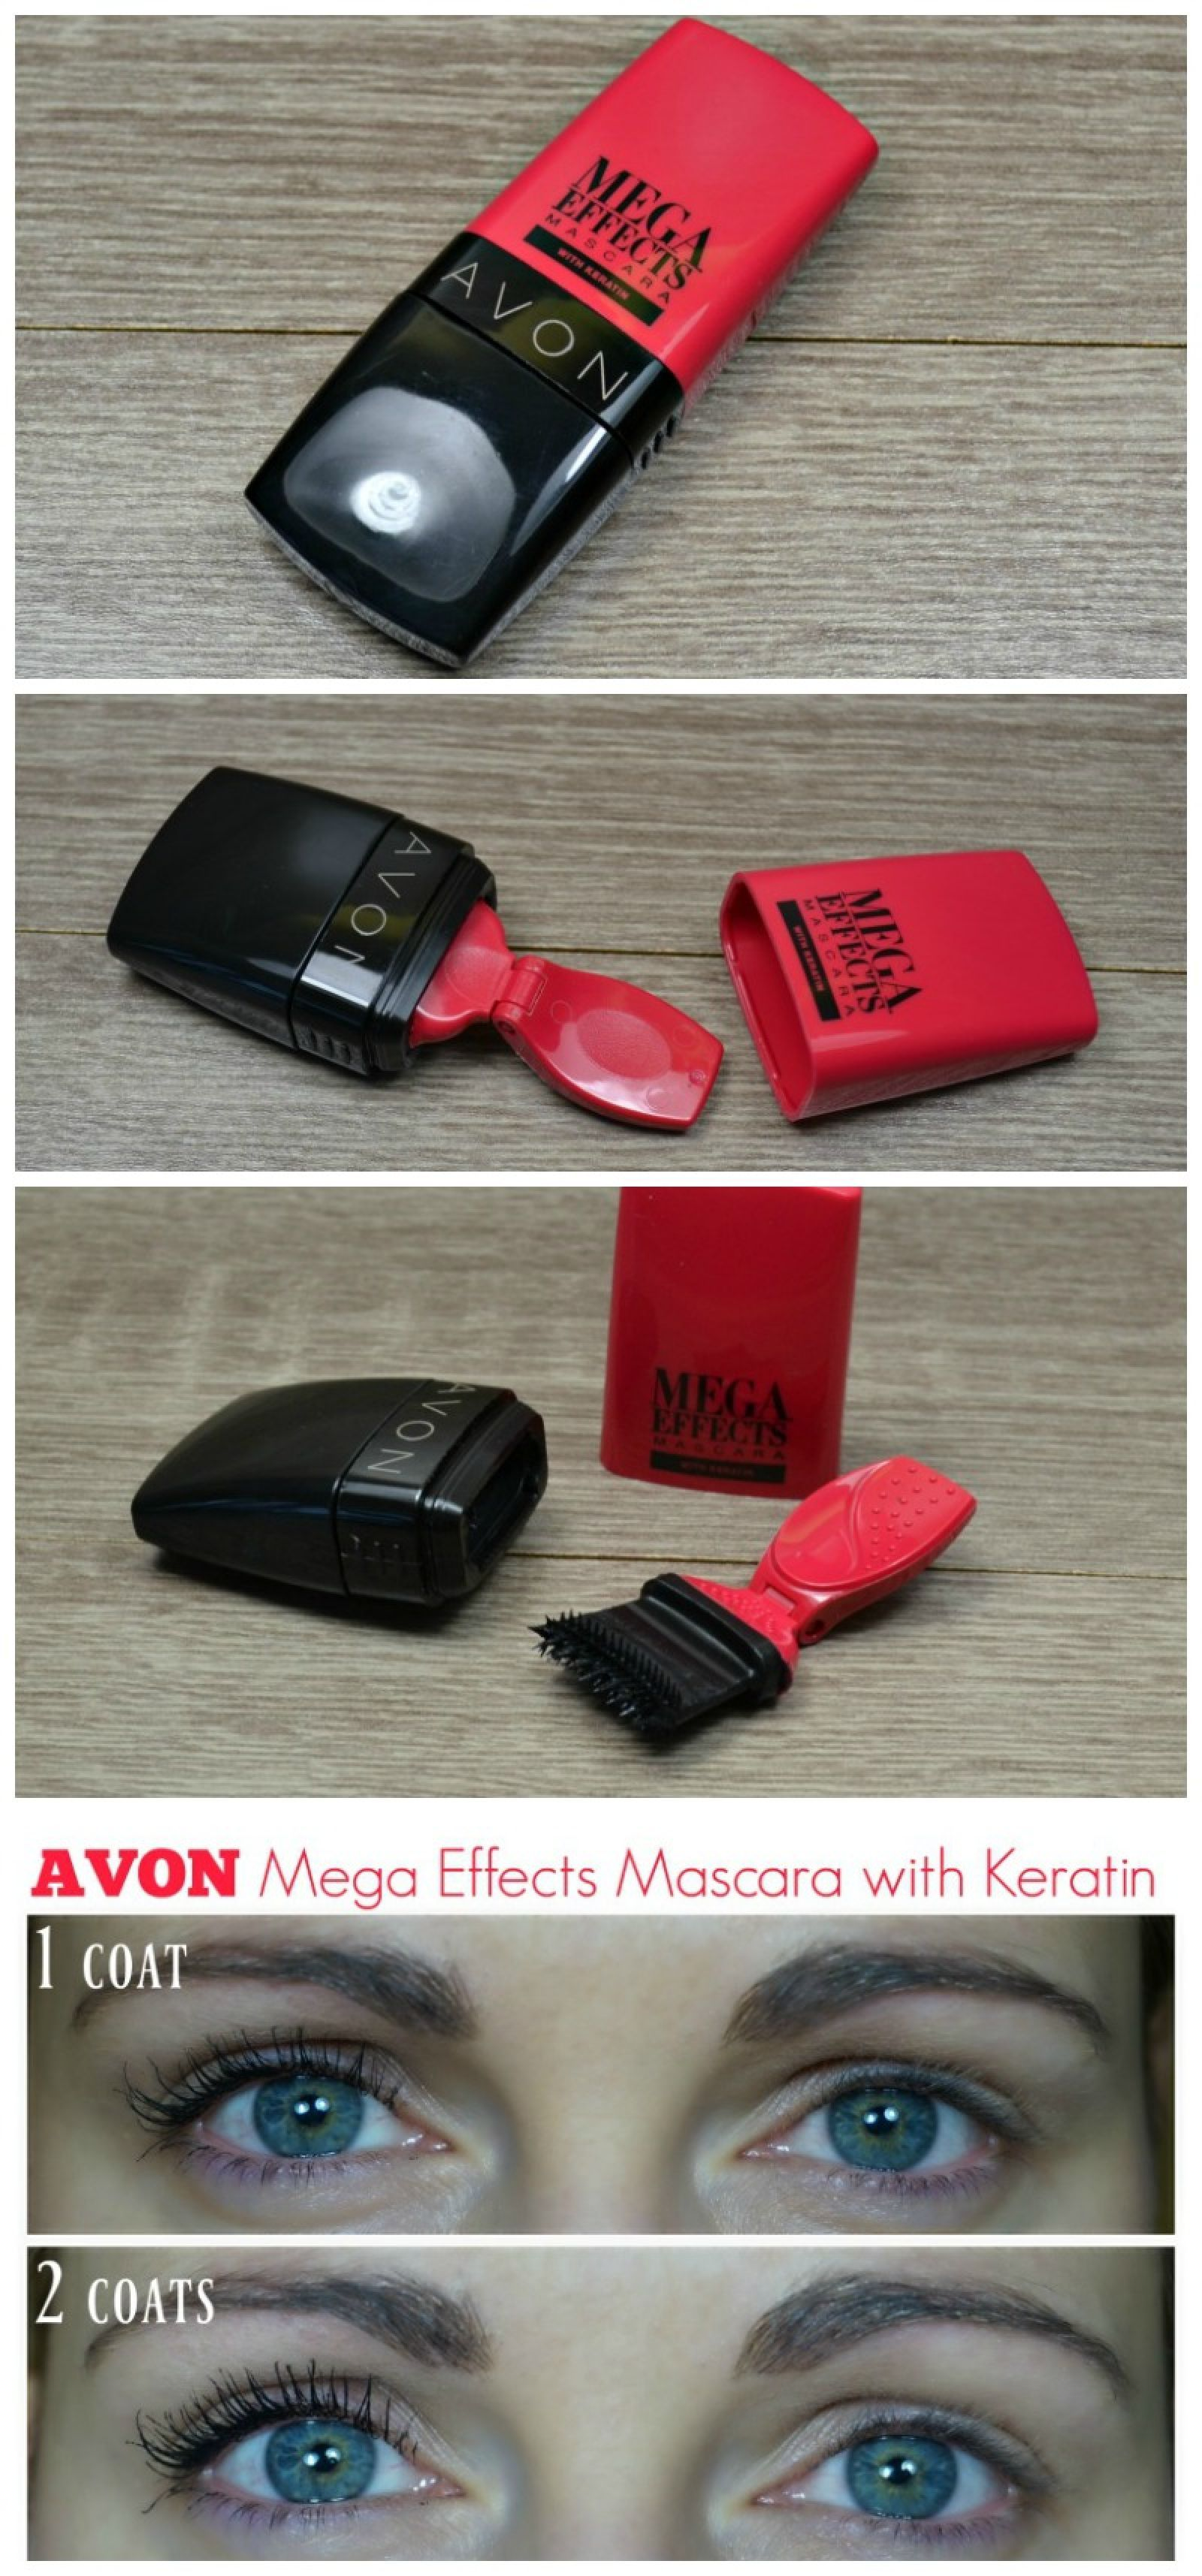 Avon Mega Effects Mascara with Keratin & makeup look